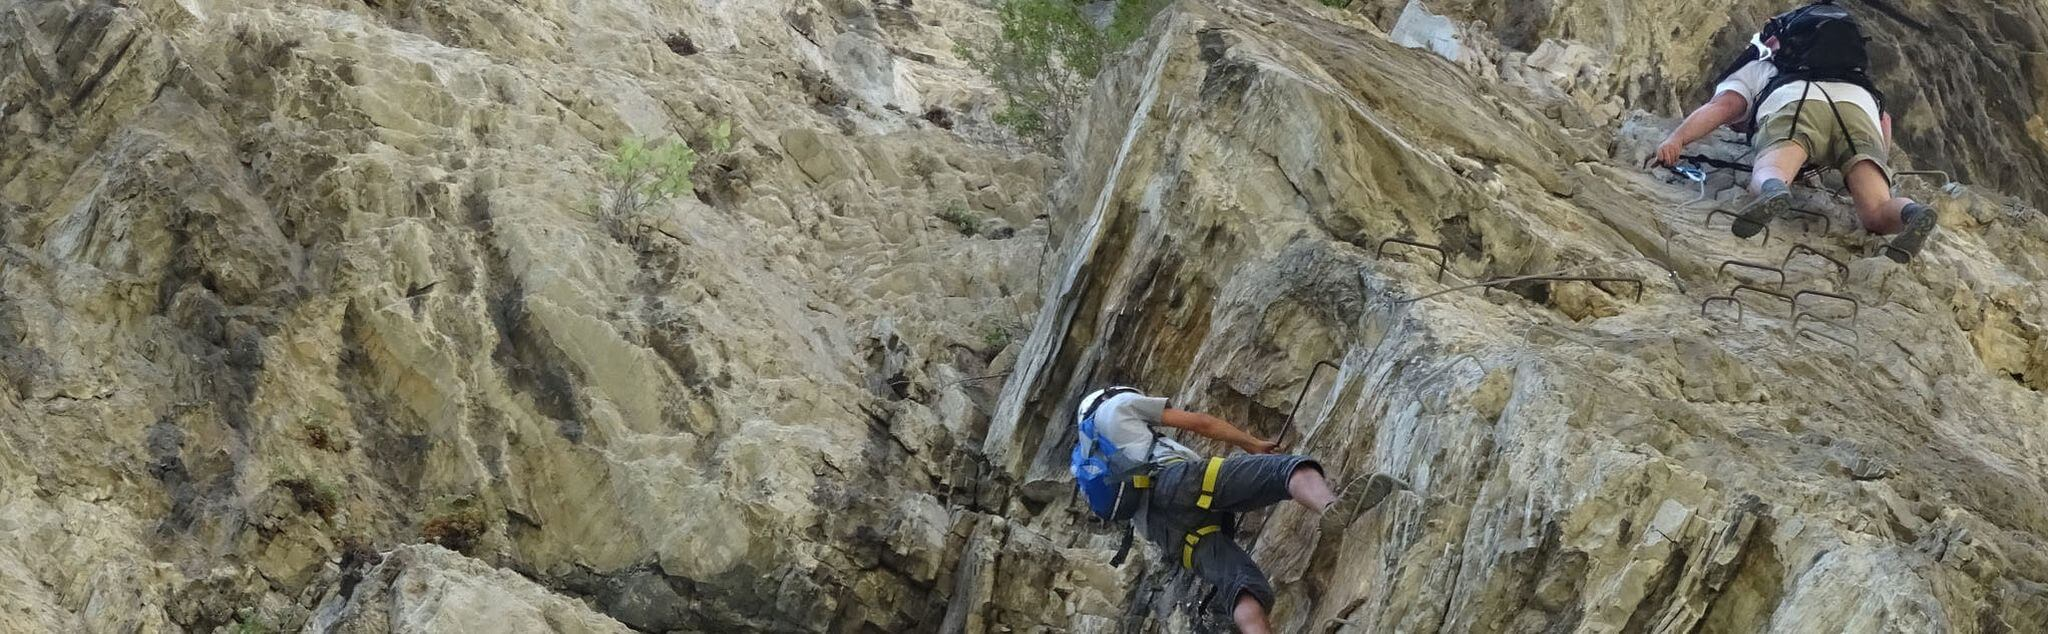 Via Ferrata a Belluno